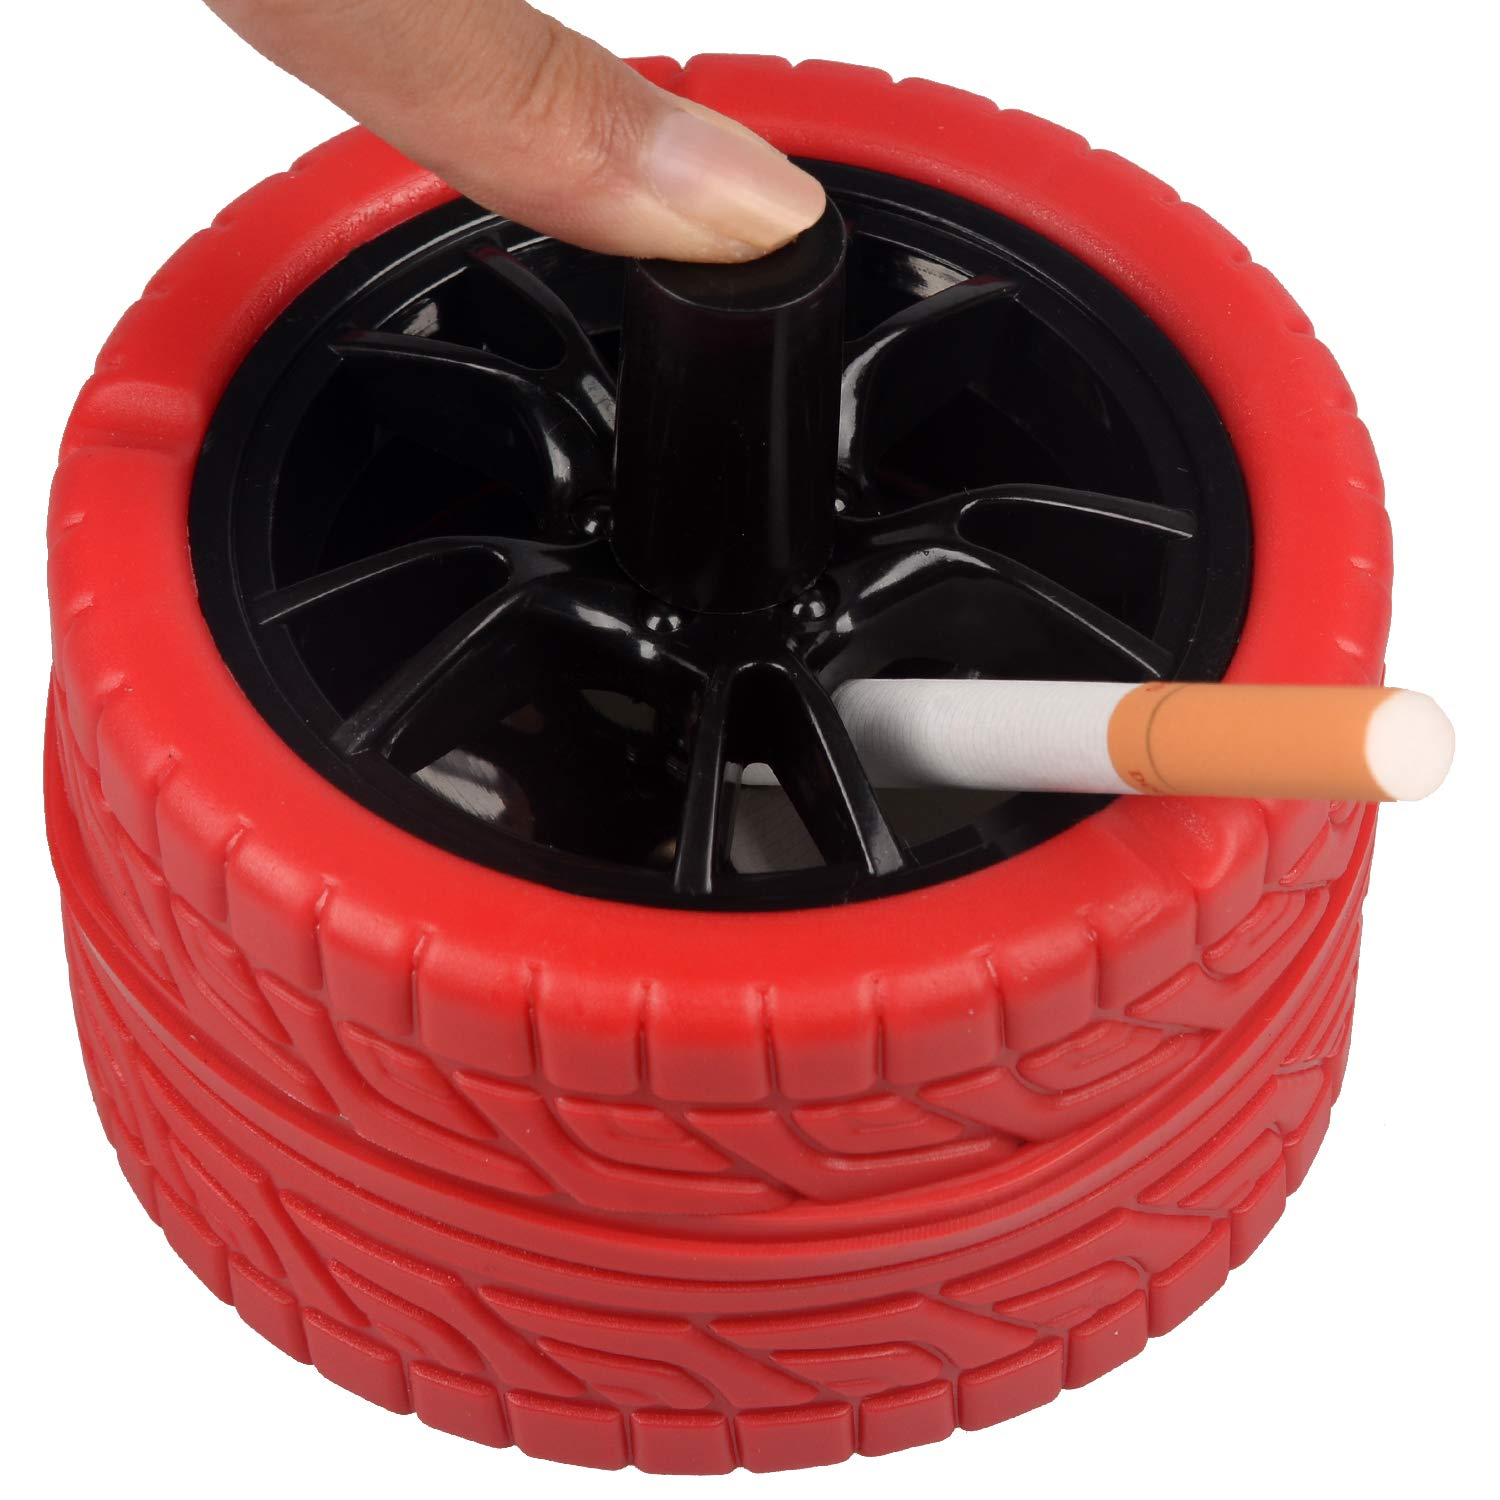 Round Push Down Ashtray with Spinning Tray for Indoor or Outdoor Use Red